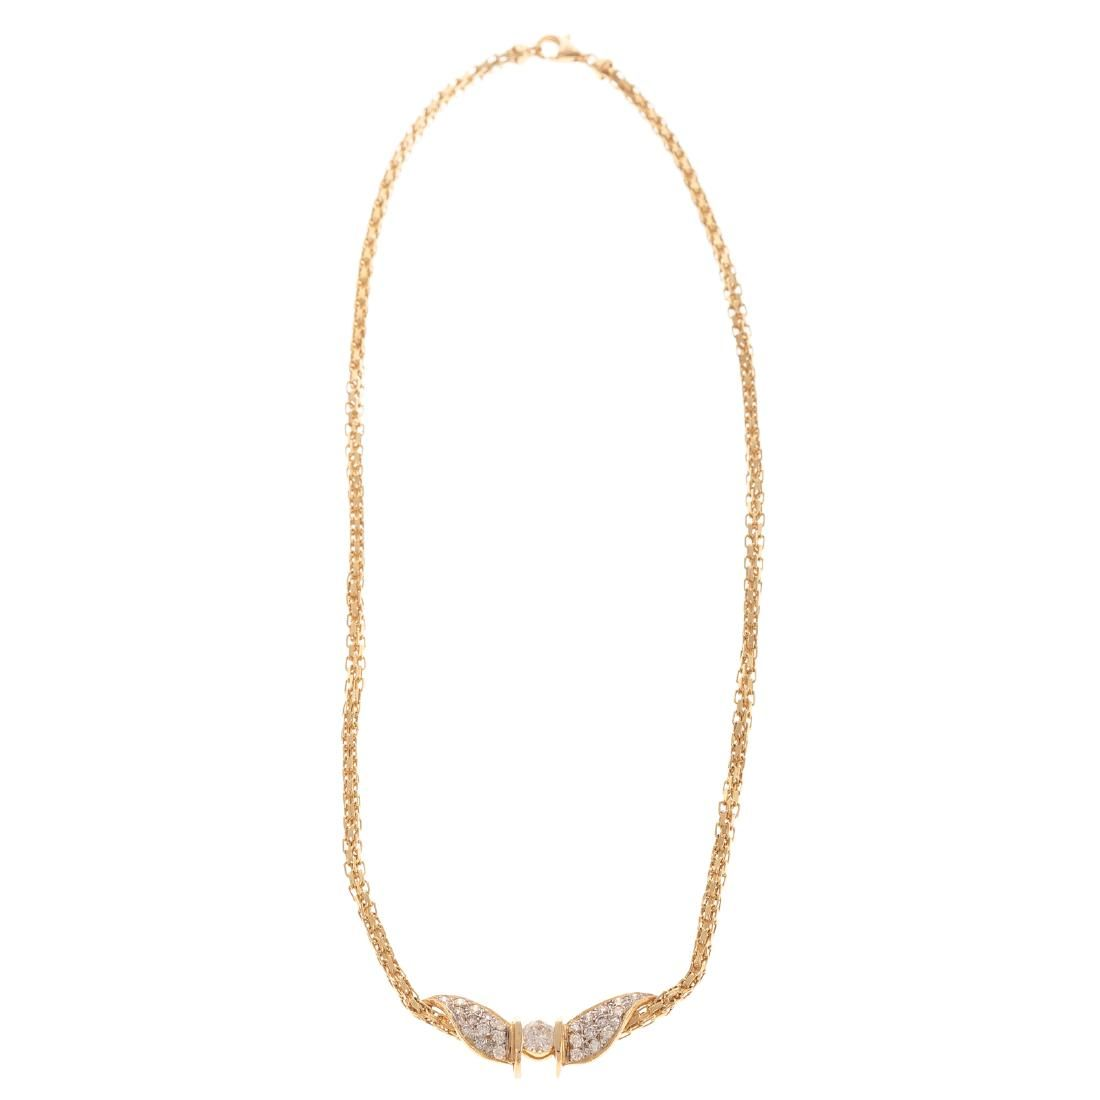 A Ladies Diamond Necklace in 14K Gold